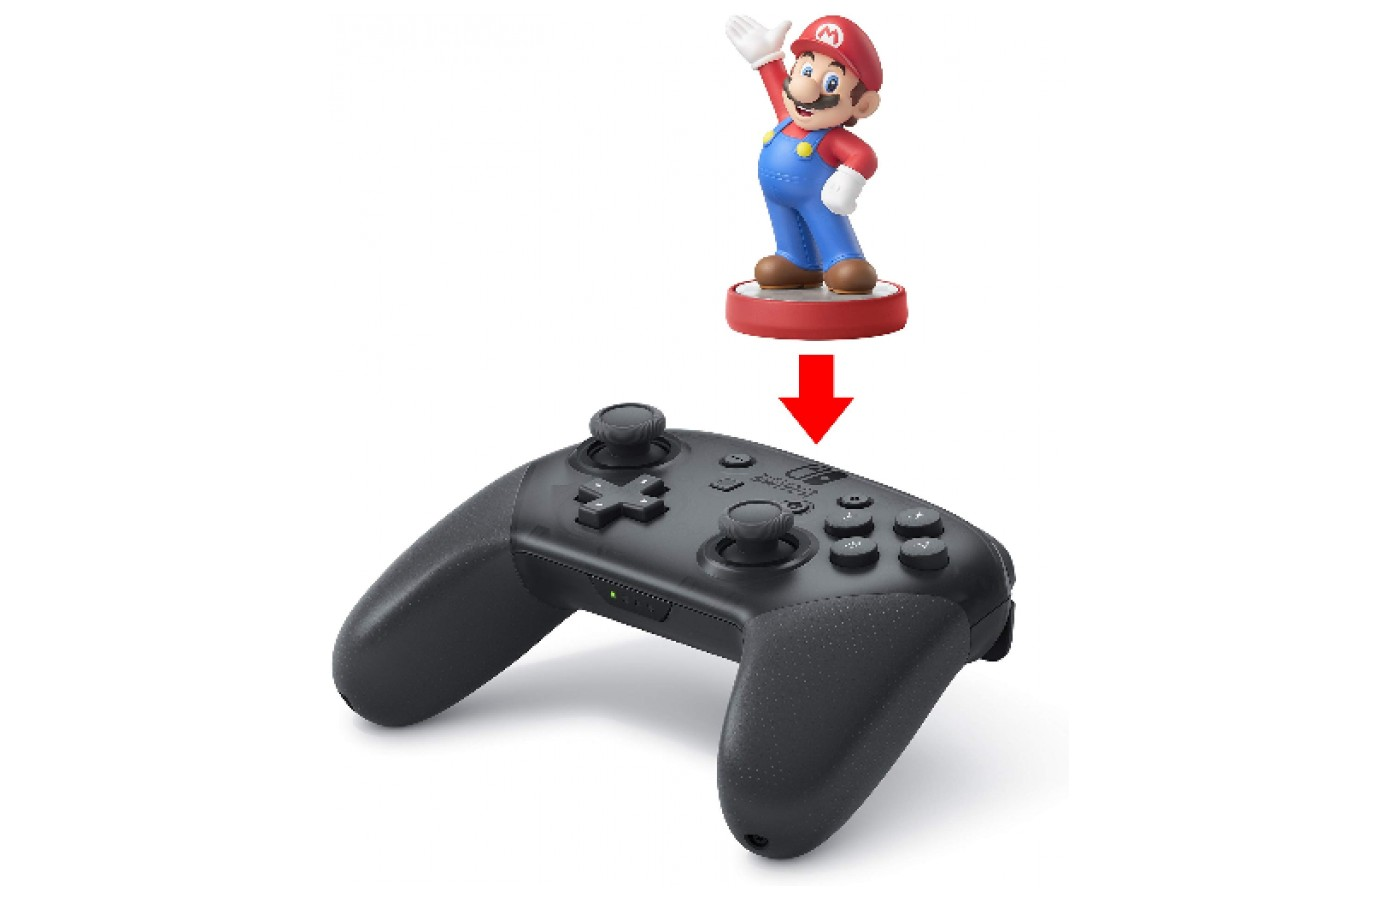 Don't worry, your Amiiba can still be scanned in via controller!